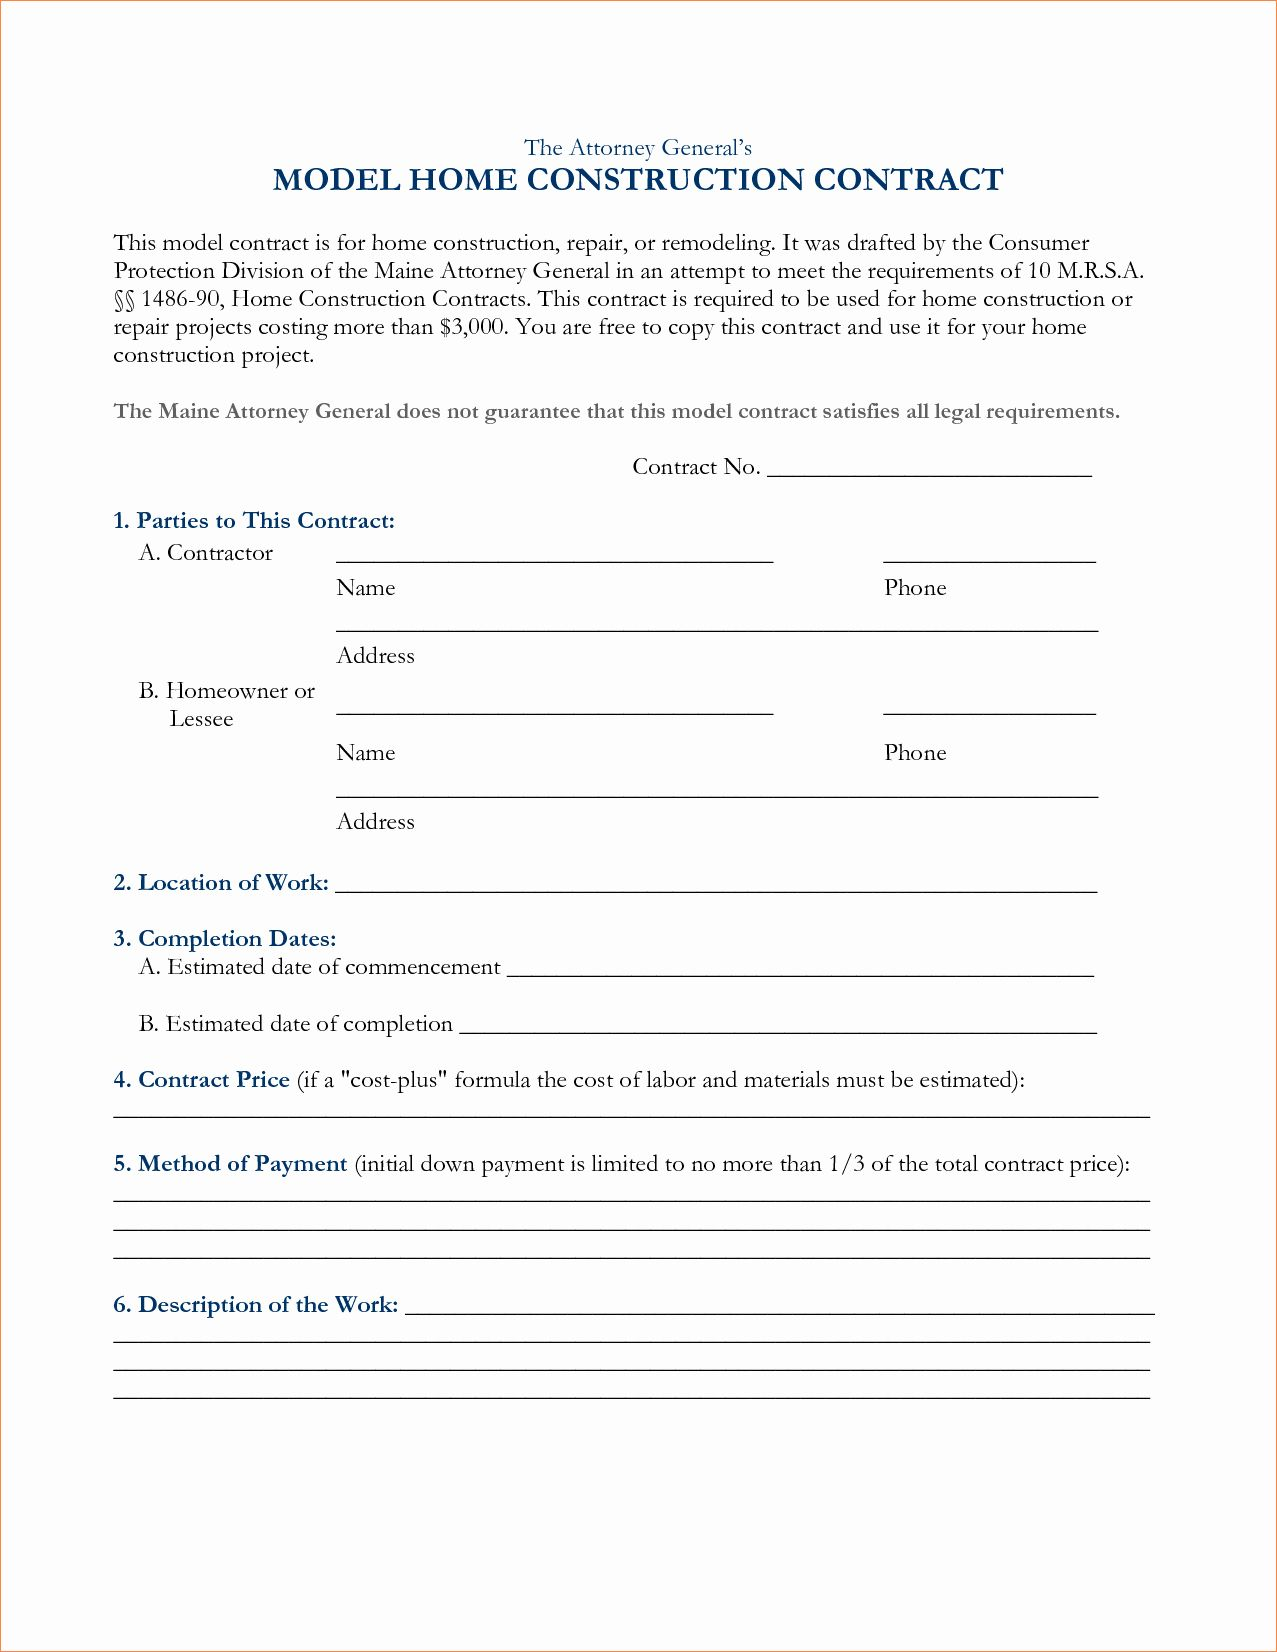 Free Roofing Contract Template Inspirational 6 Free Construction Contracts Templatesreport Template Construction Contract Contract Template Contract Agreement Free residential roofing contract template